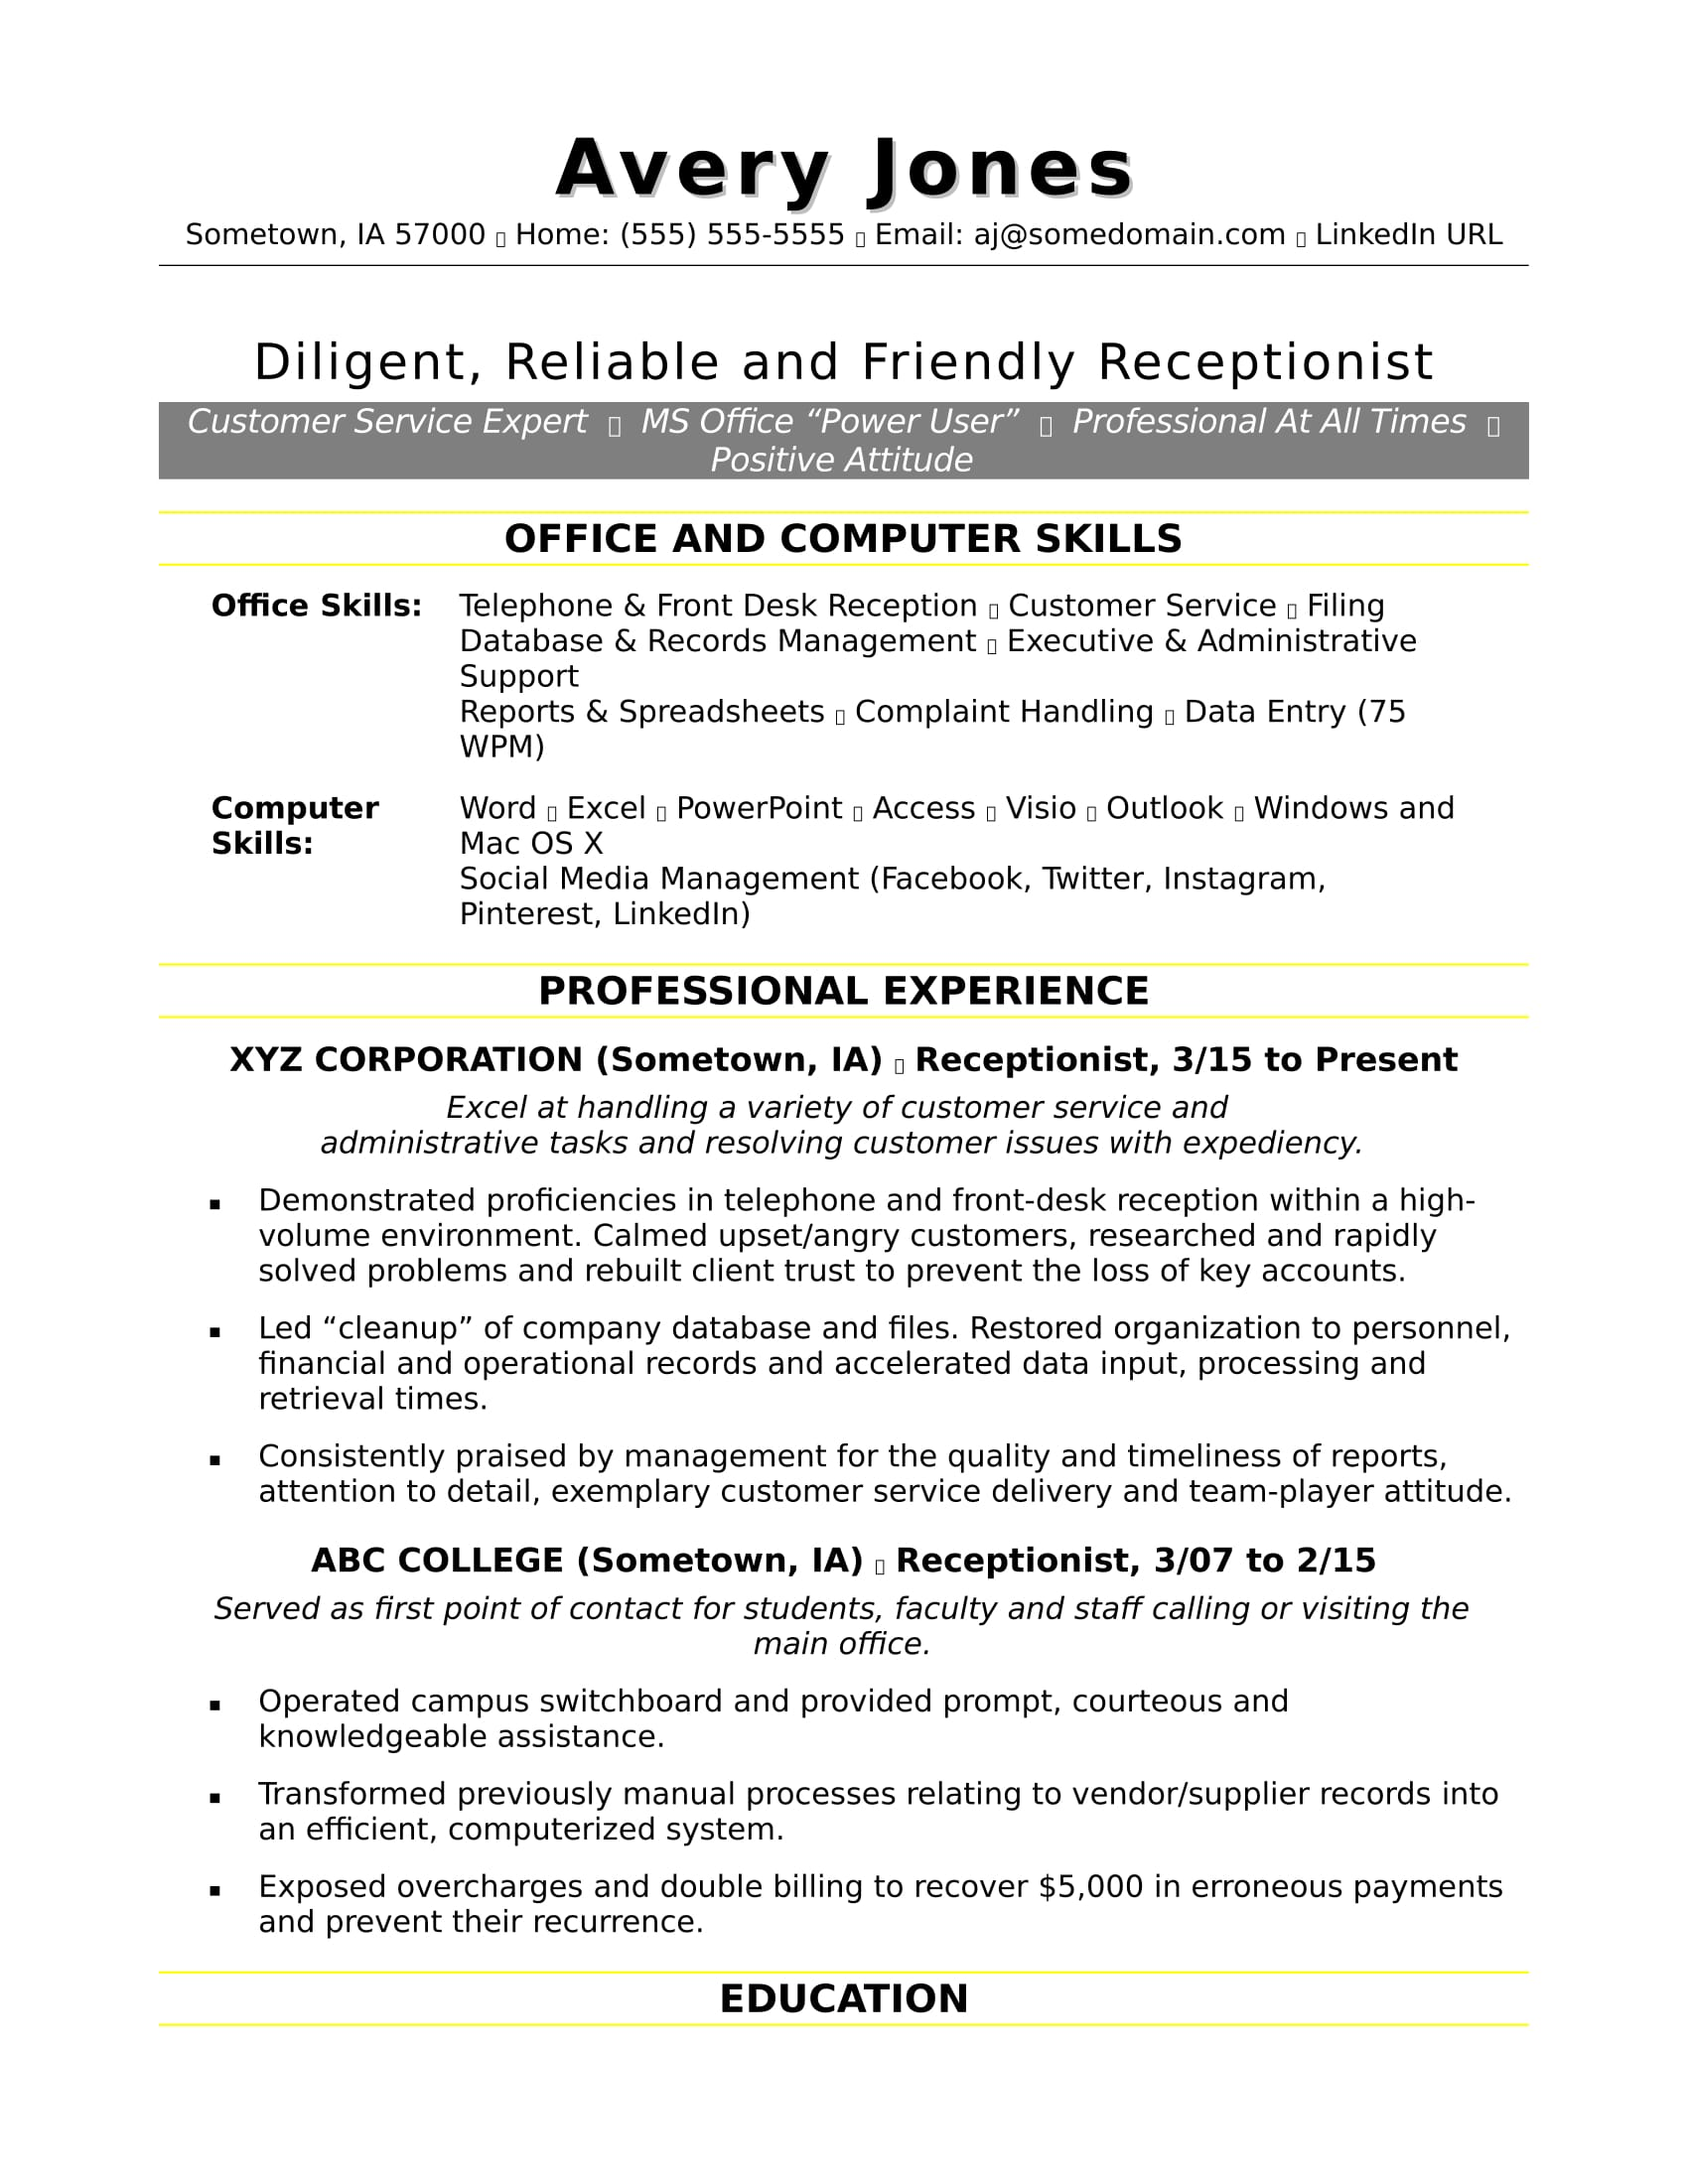 receptionist resume sample monster office experience mis executive example best objective Resume Office Experience Resume